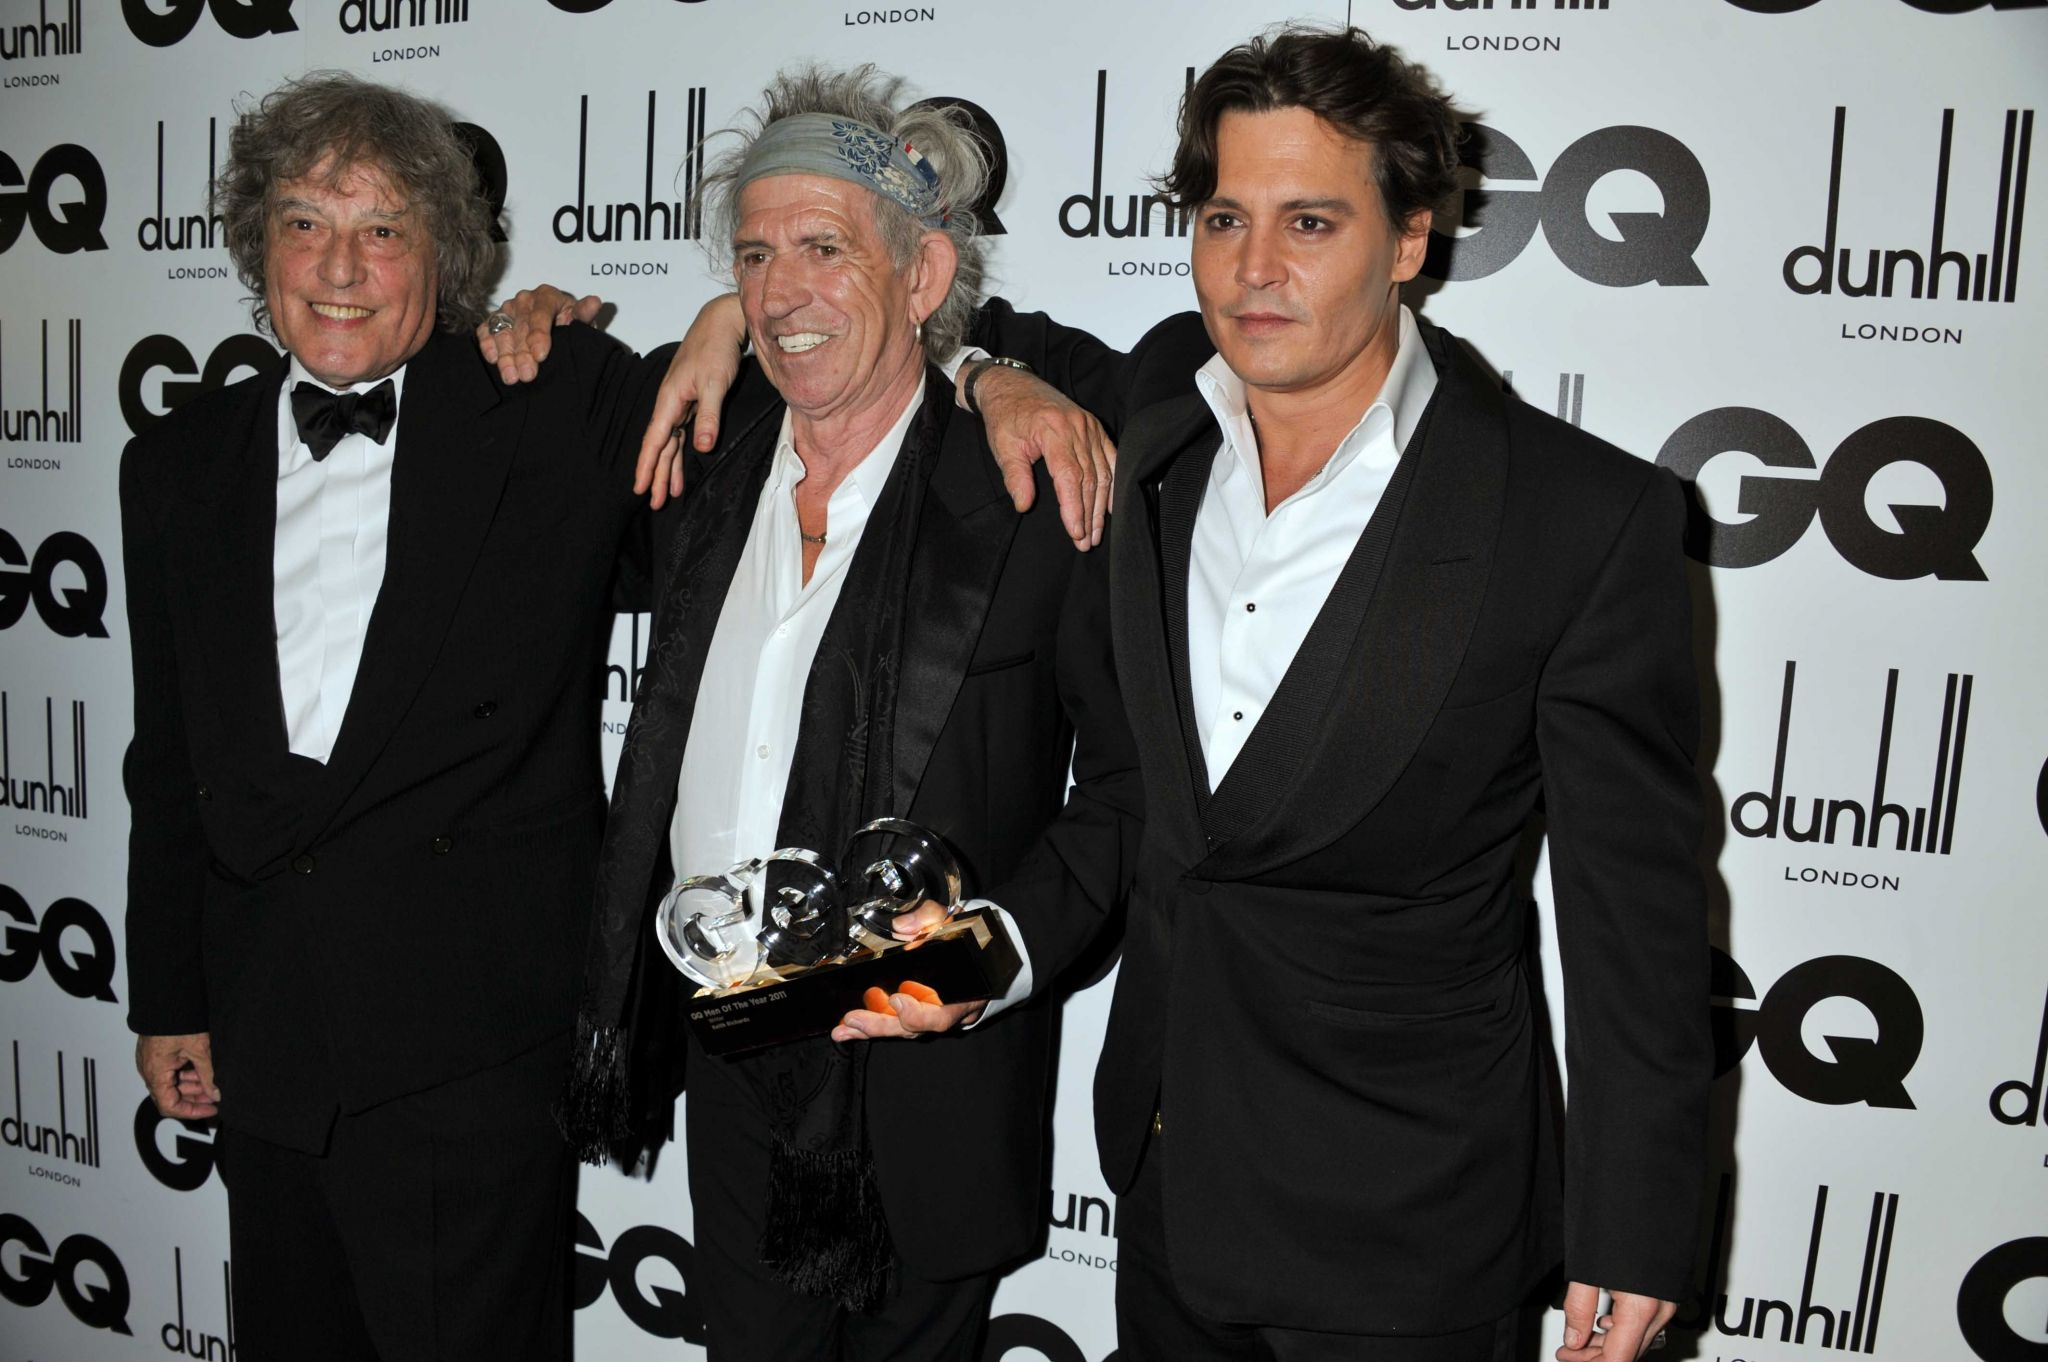 GQ Men Of The Year Awards - Londres (06/09/2011) - Johnny Depp